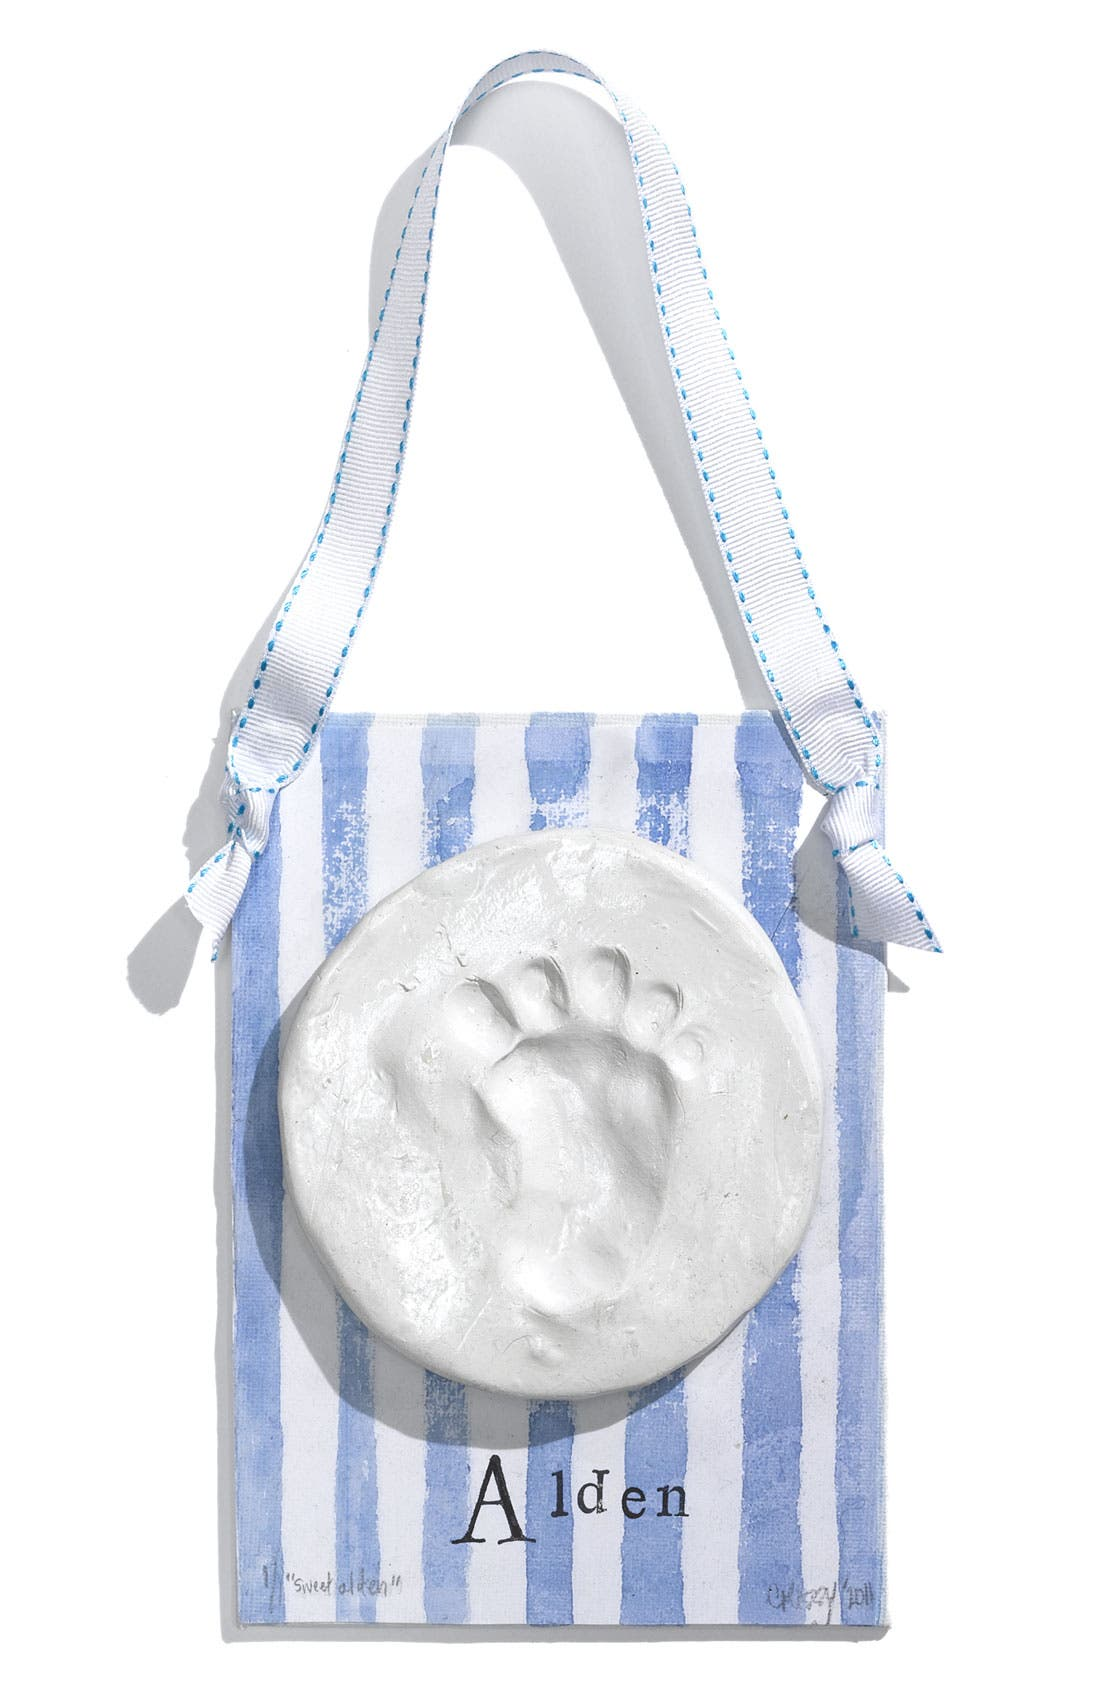 Alternate Image 1 Selected - Someday Inc. Clay Handprint Kit